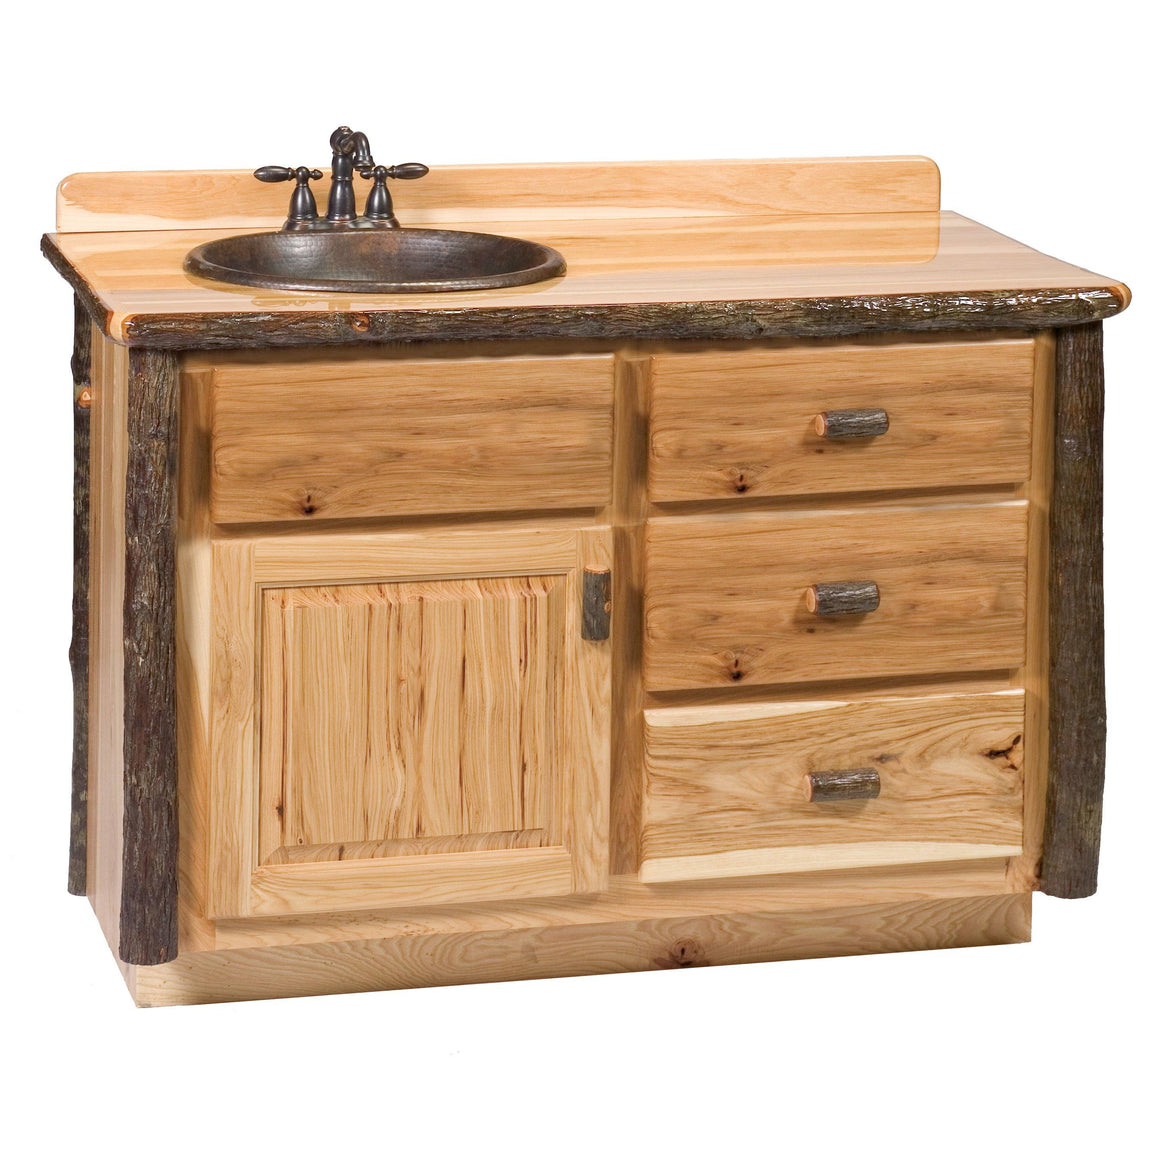 Hickory Log Vanity - 36, 42, 48 Inch without Top - Sink Right-Rustic Deco Incorporated